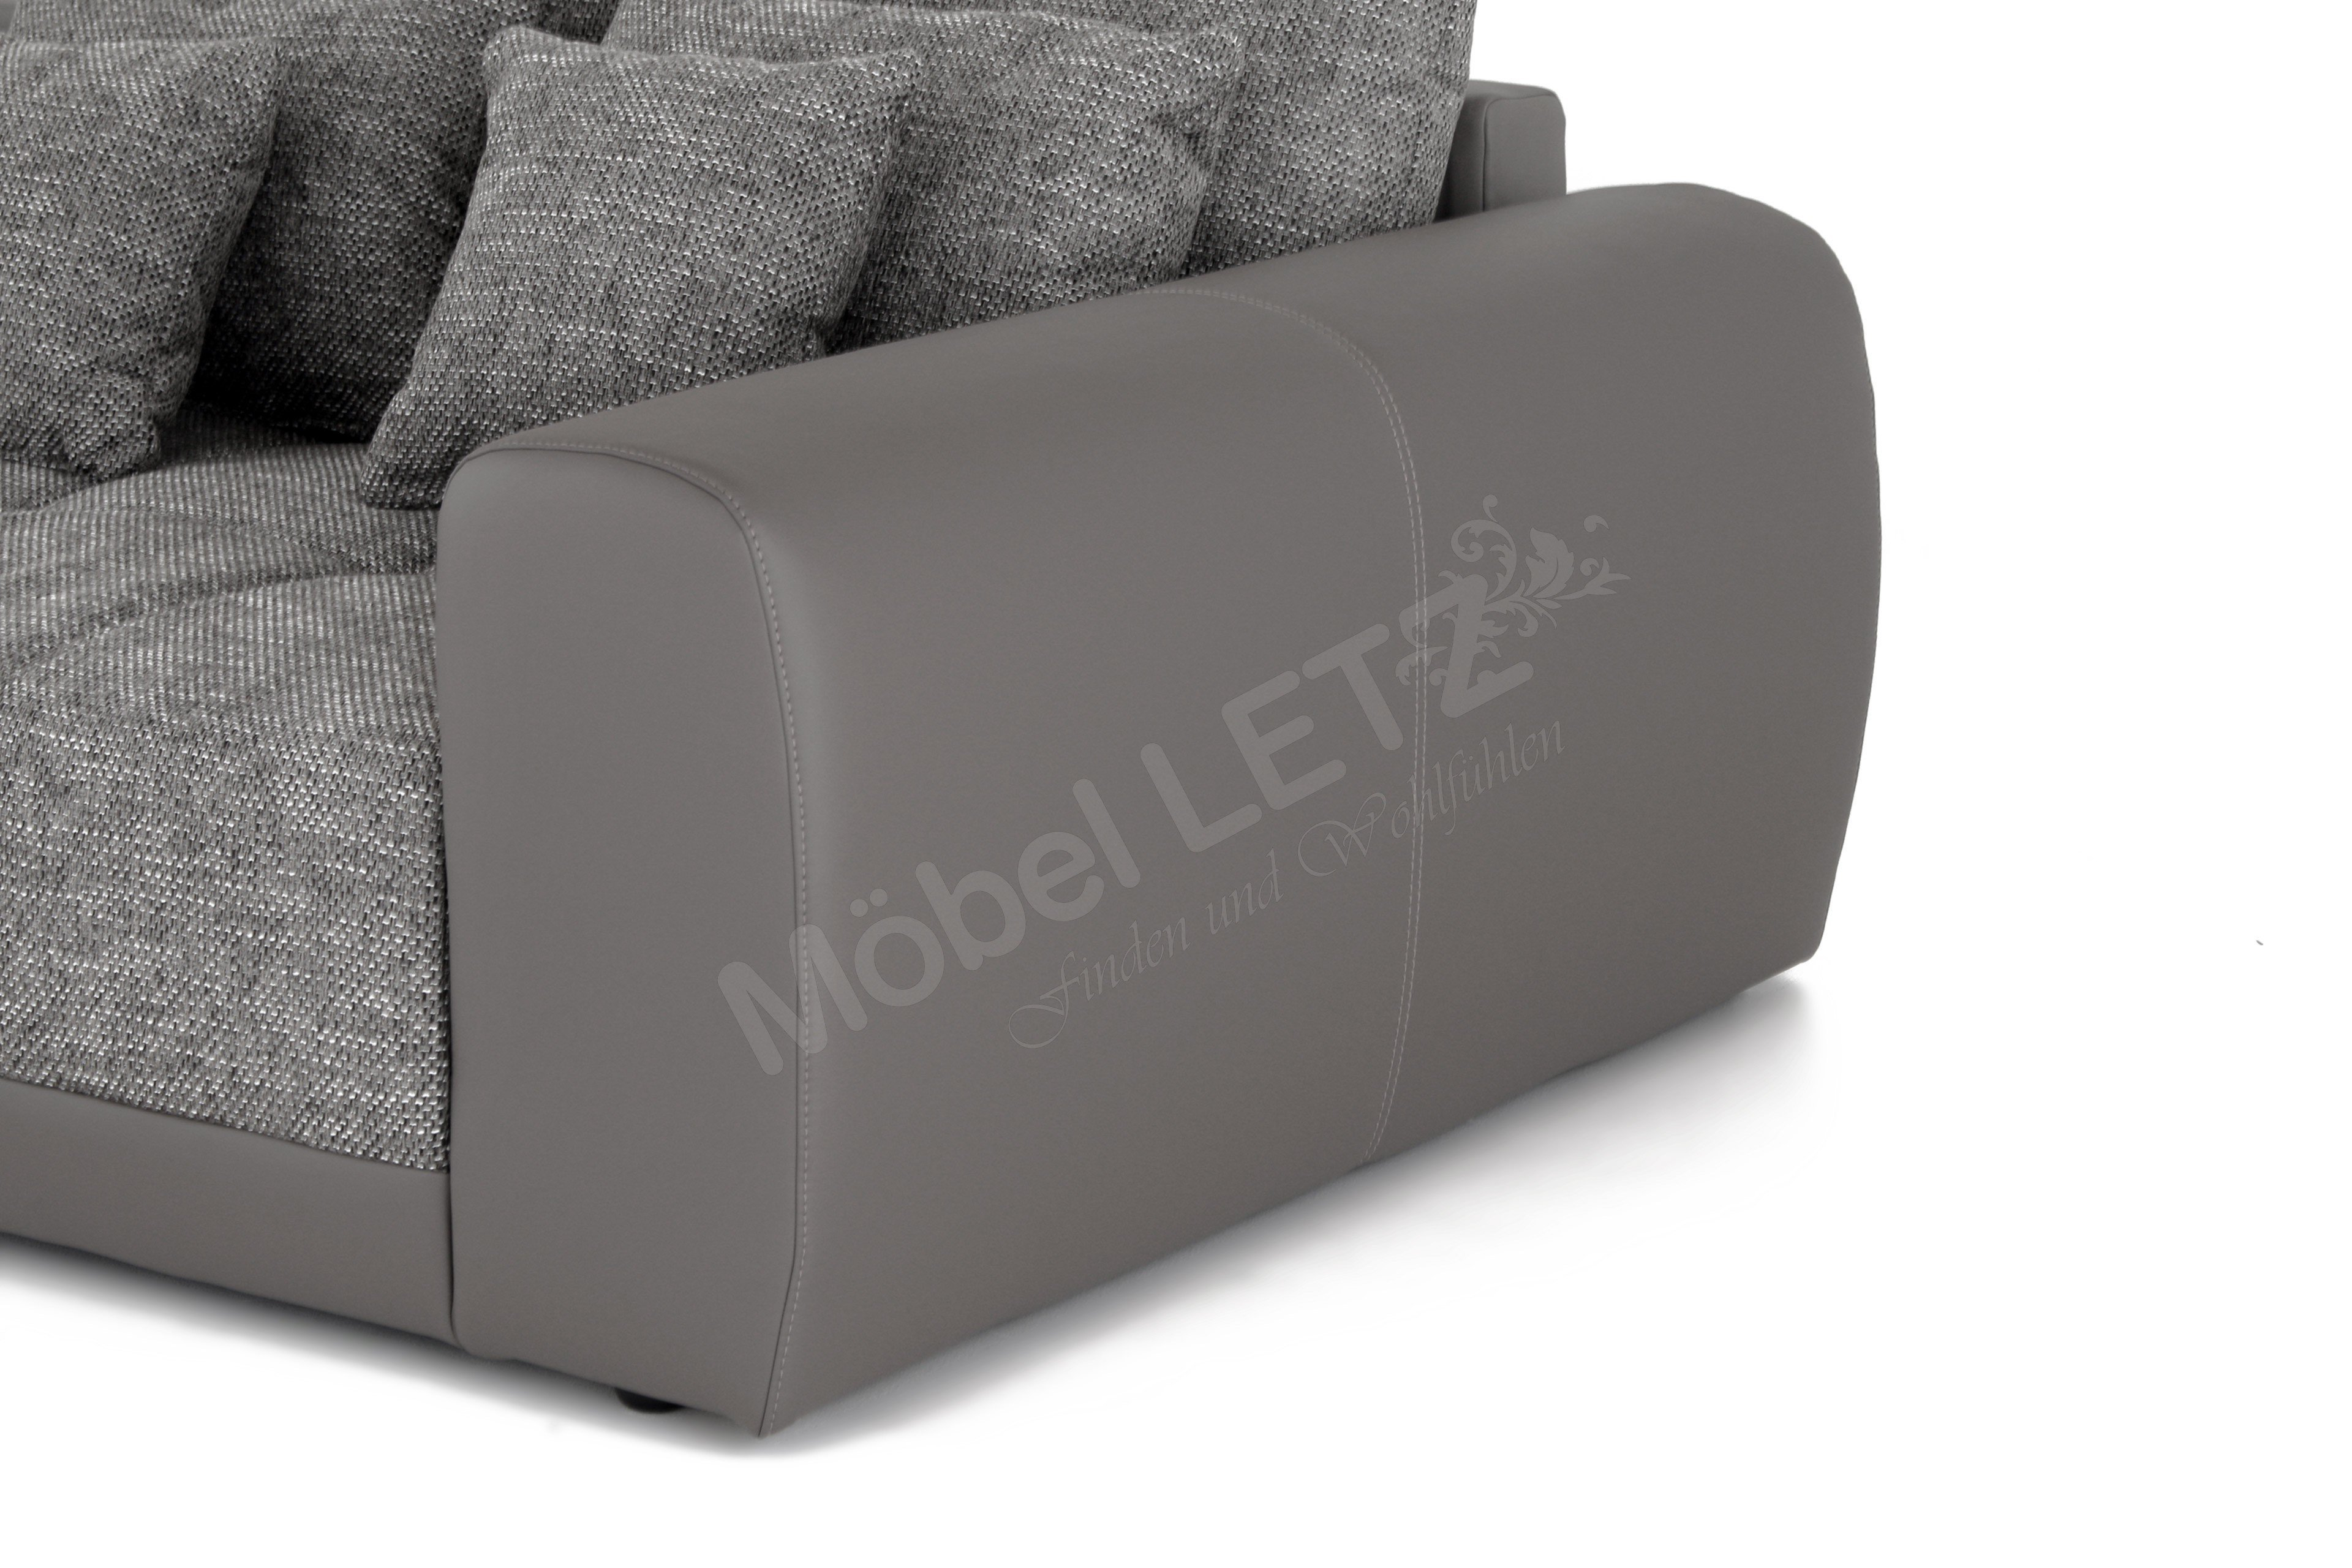 sofa grau best sofa grau with sofa grau perfect sconto. Black Bedroom Furniture Sets. Home Design Ideas